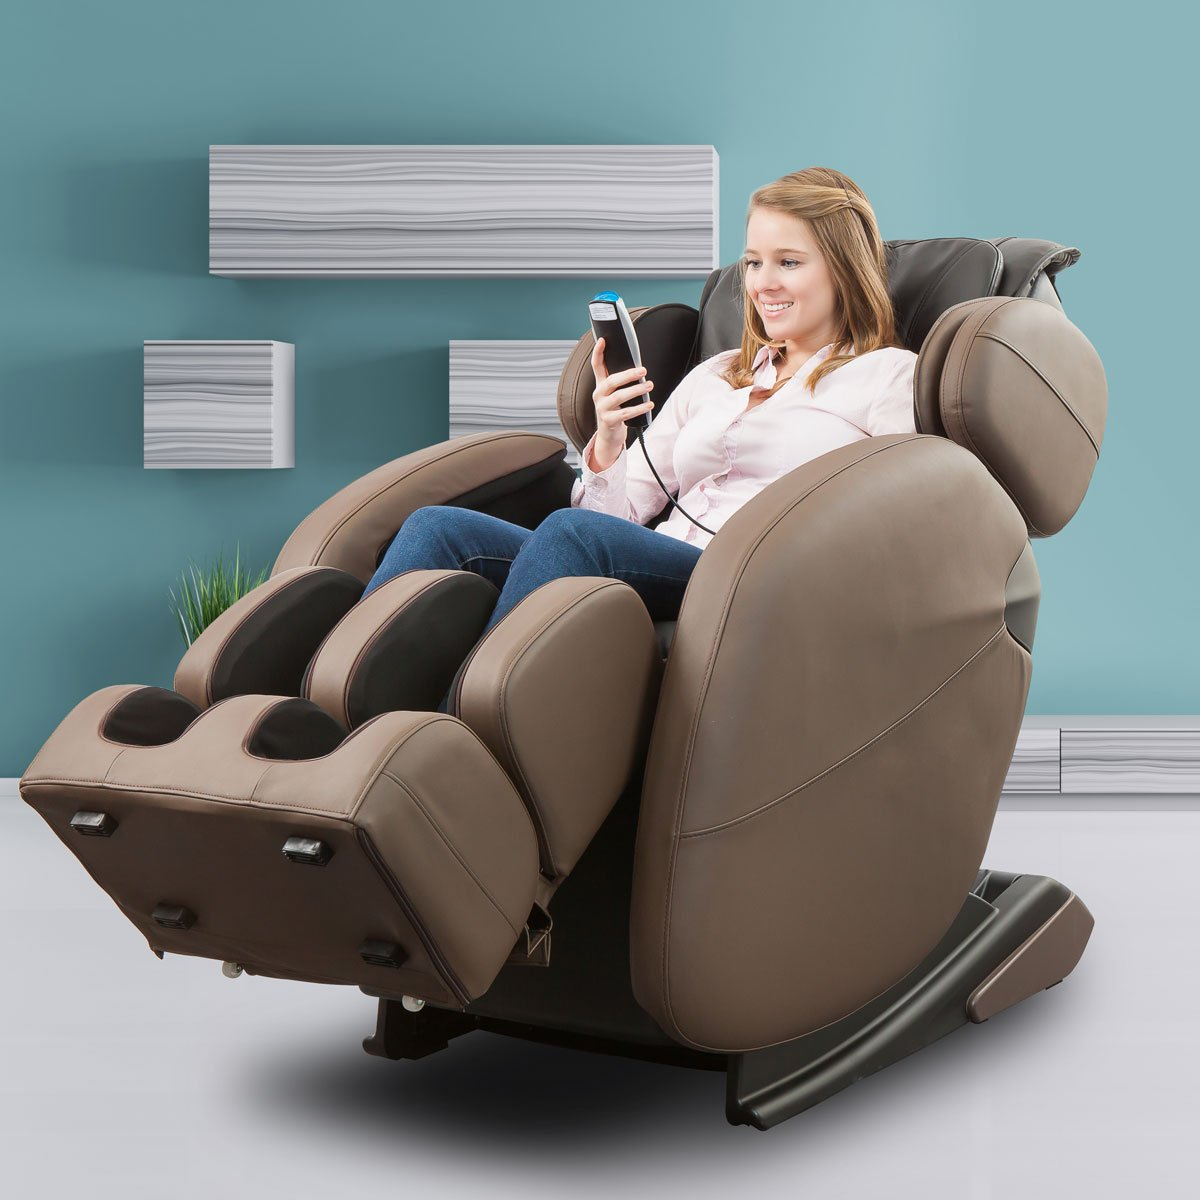 Best Reclining Chairs Recliners Reviews 2018 2019 On Flipboard By Kinida